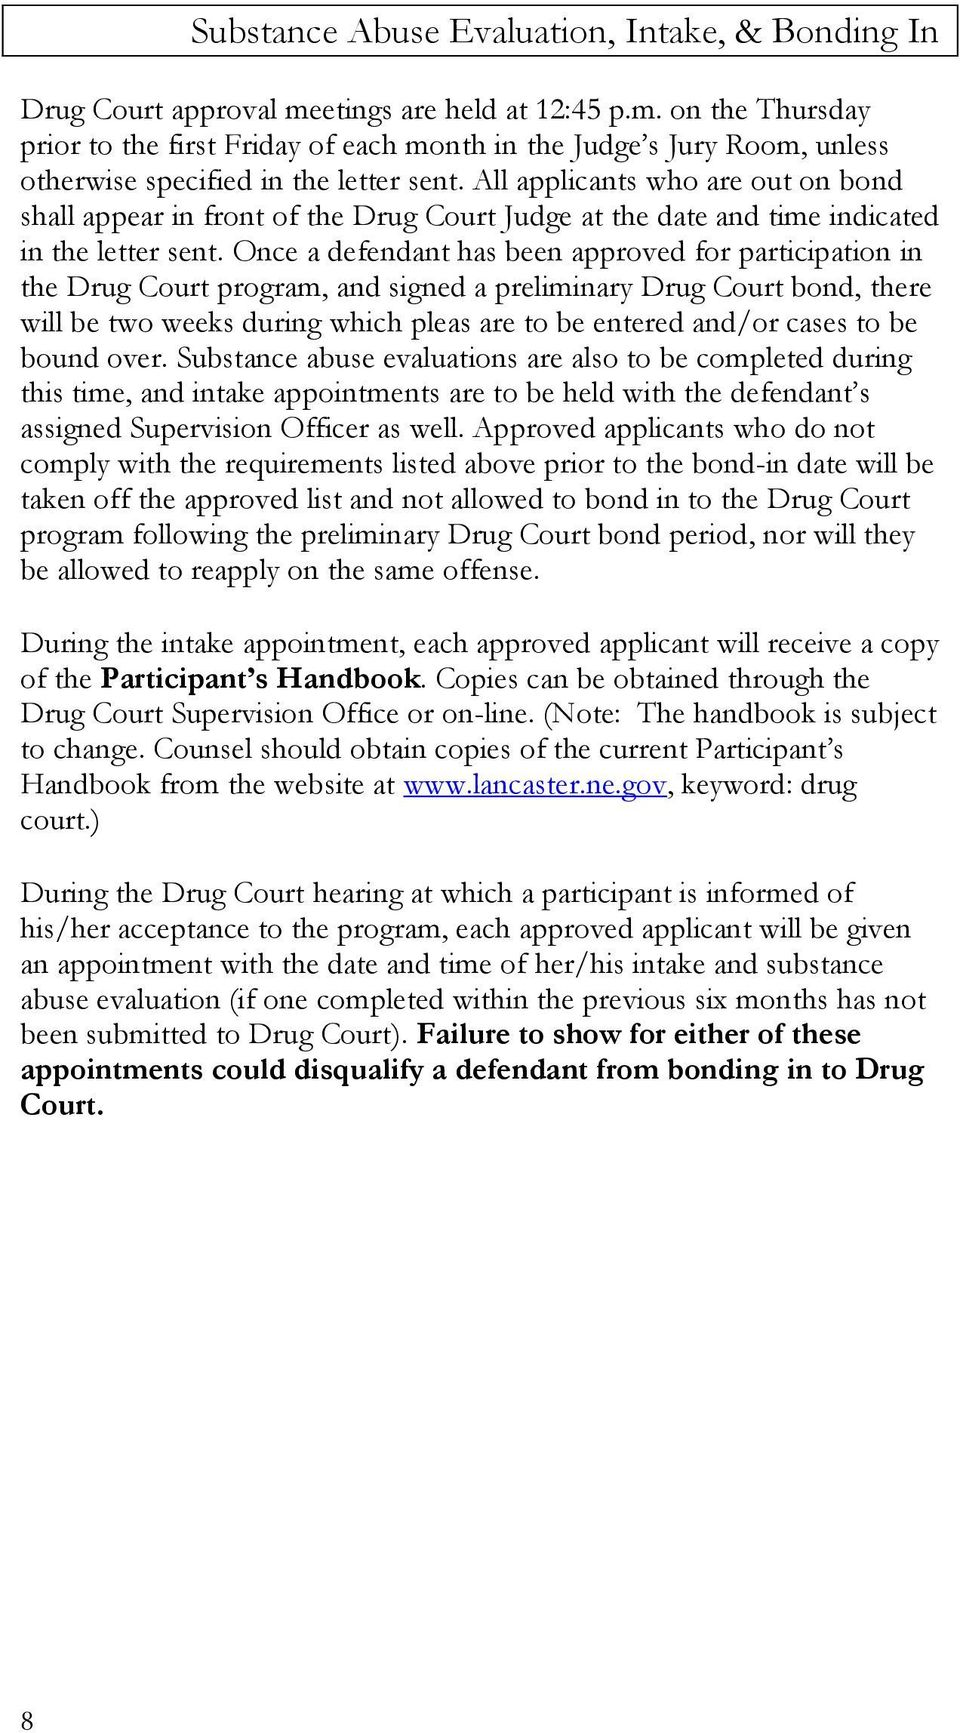 Once a defendant has been approved for participation in the Drug Court program, and signed a preliminary Drug Court bond, there will be two weeks during which pleas are to be entered and/or cases to